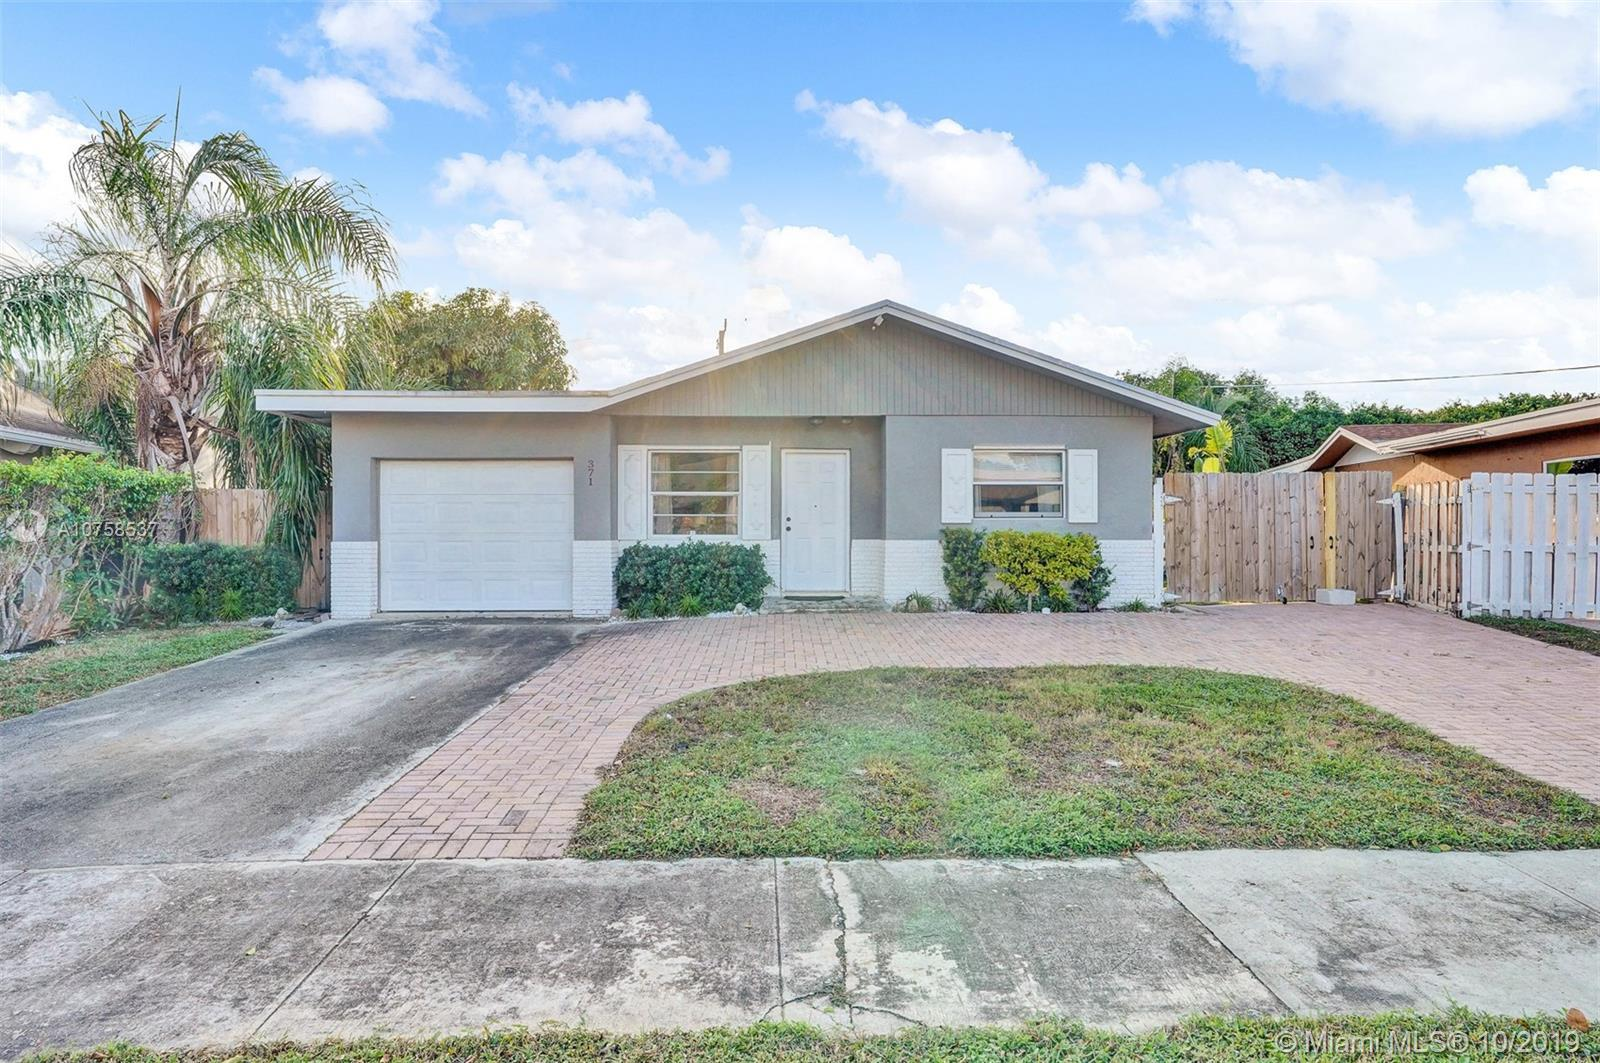 Fantastic 3 bedroom home on an oversized lot! This spacious interior has generous living spaces, til